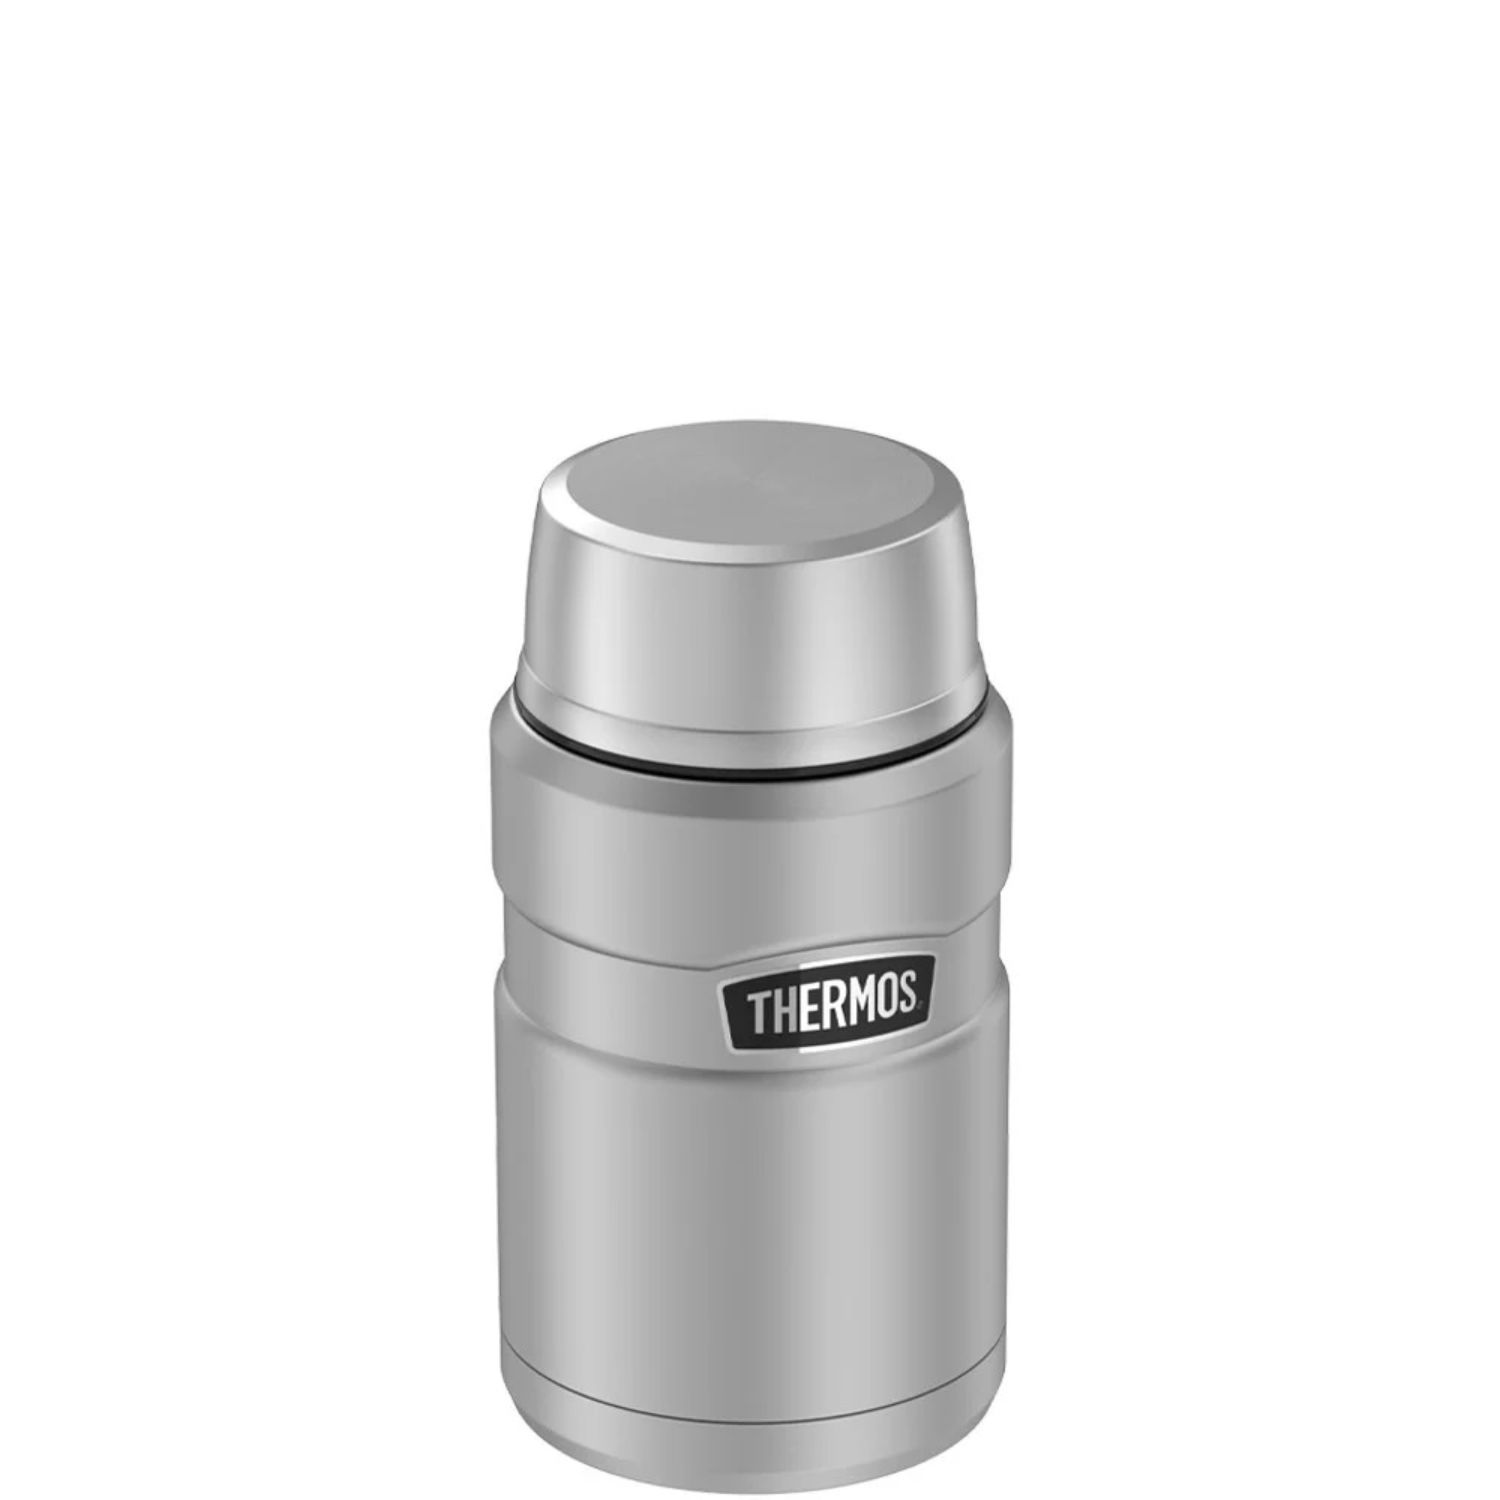 Thermos 24 oz Stainless Steel Food Jar Silver